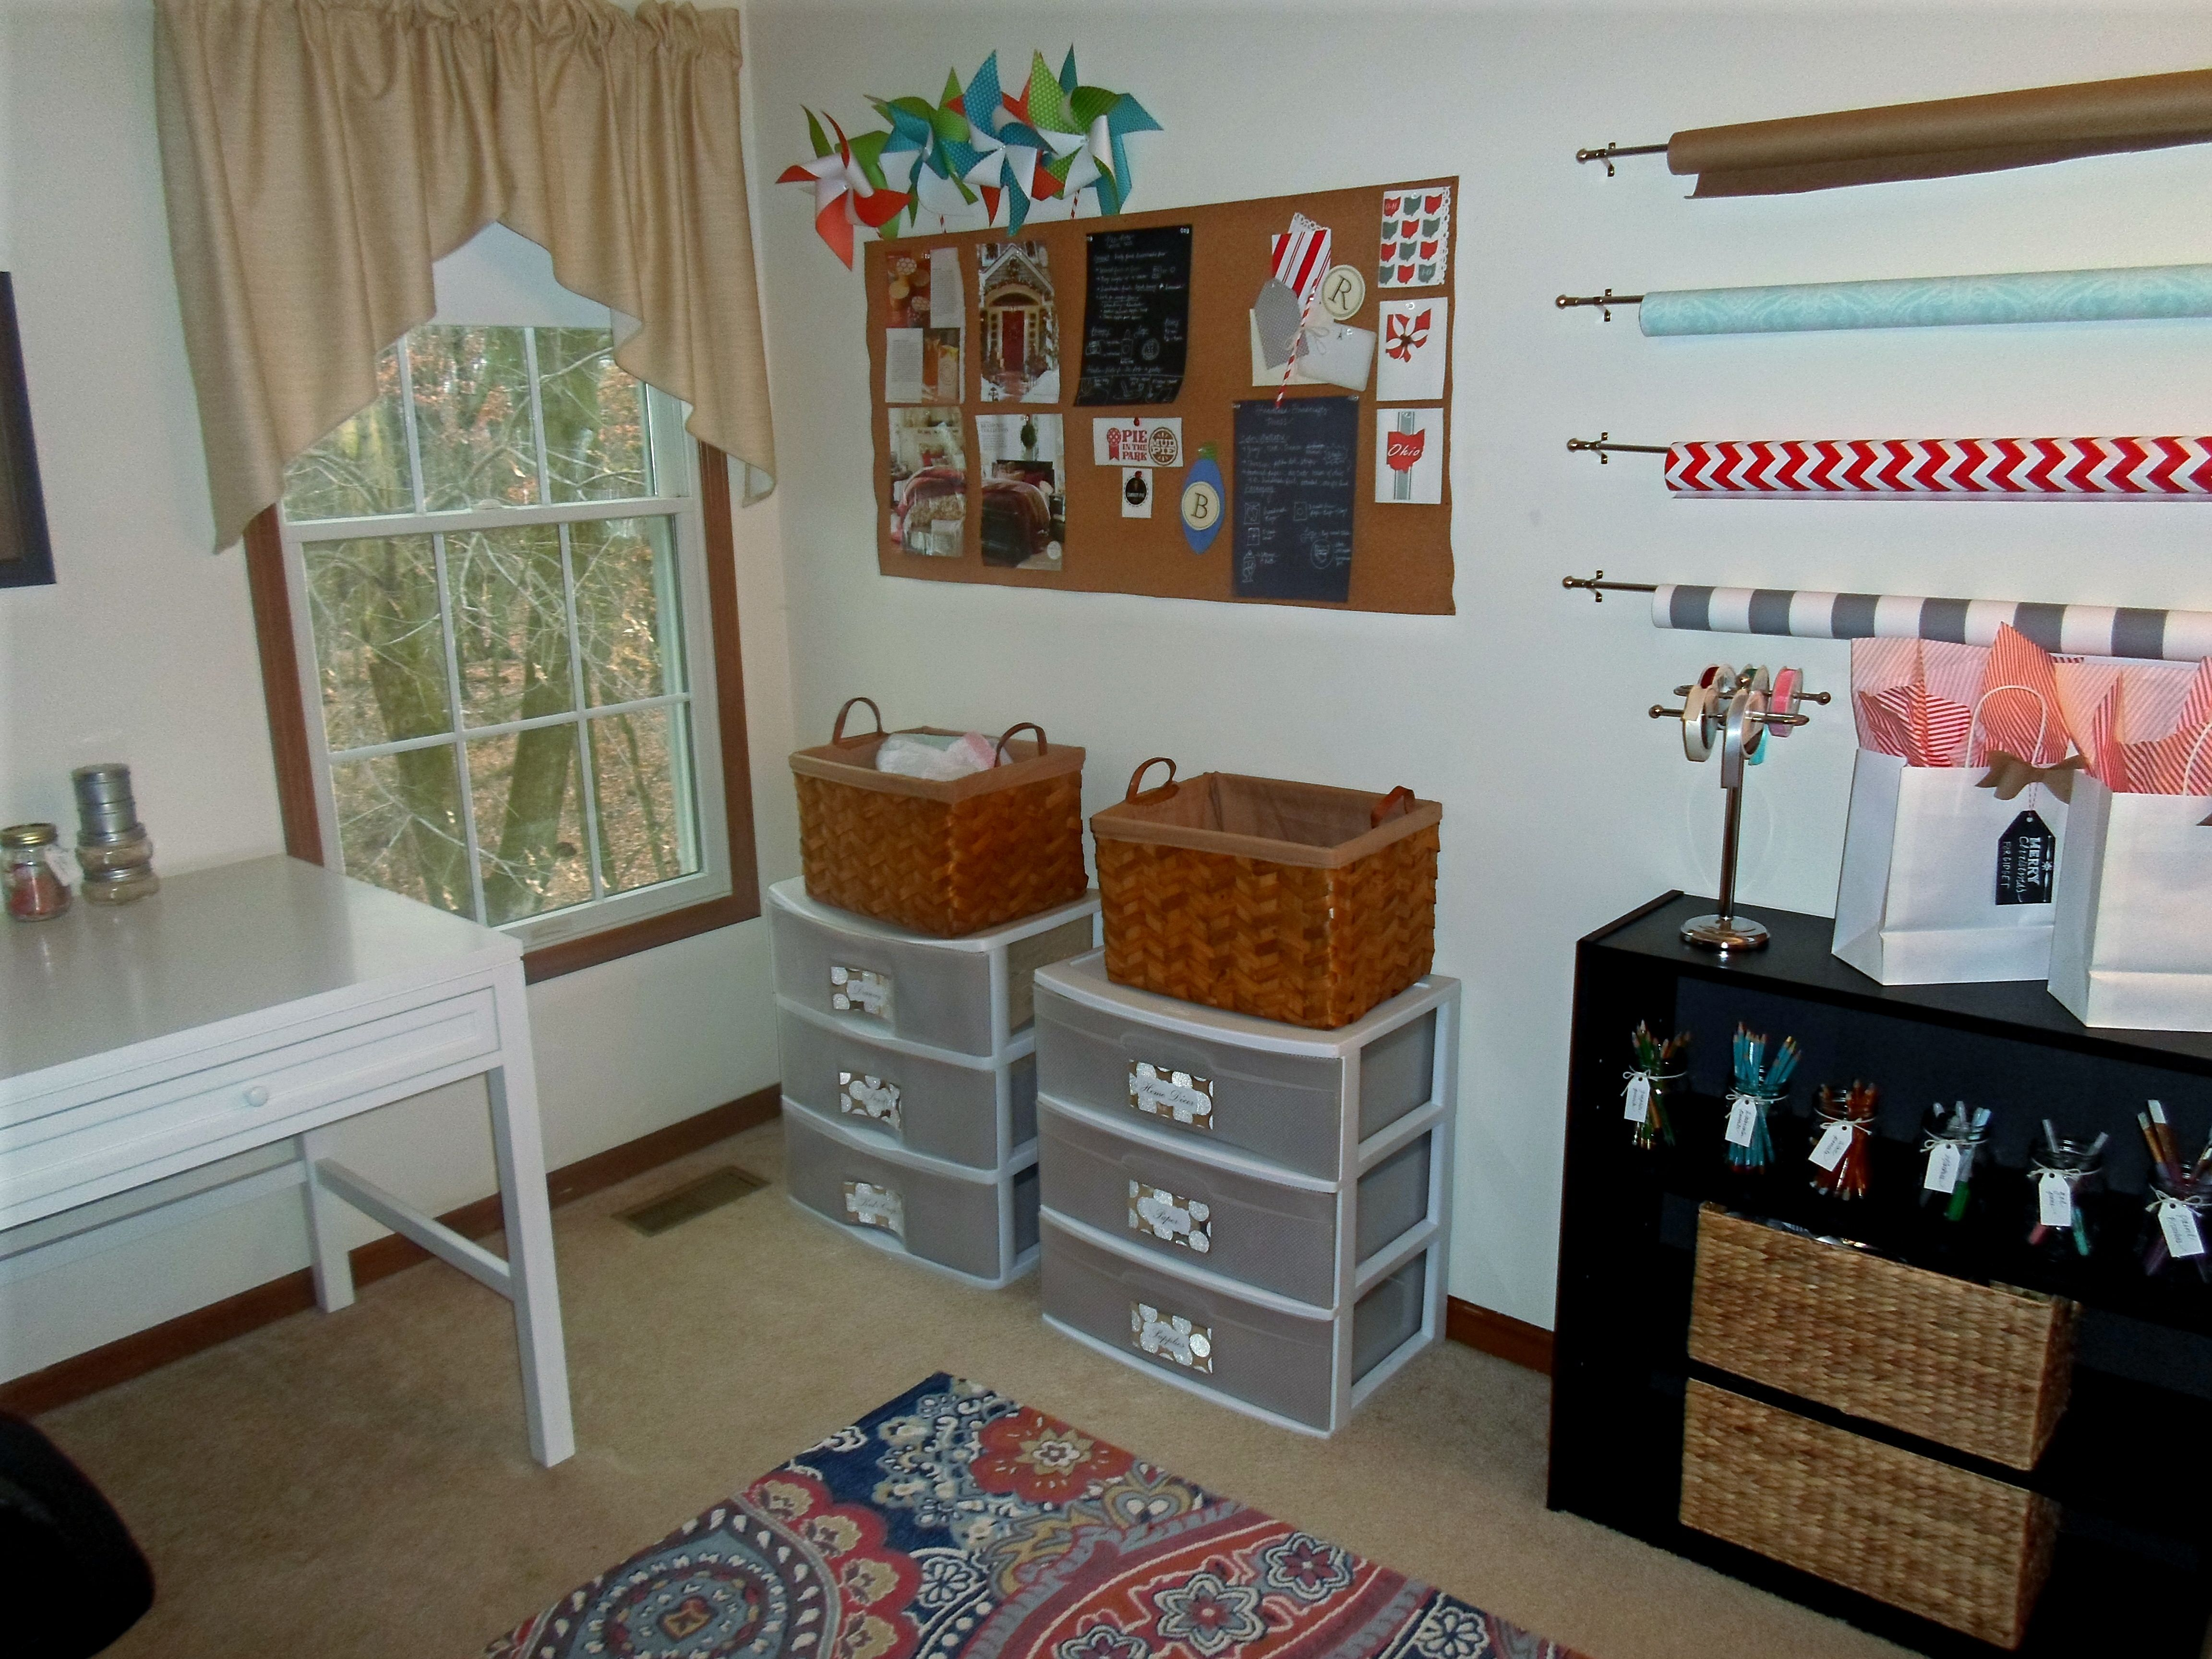 Diy craft room on a budgetgift wrapping station made